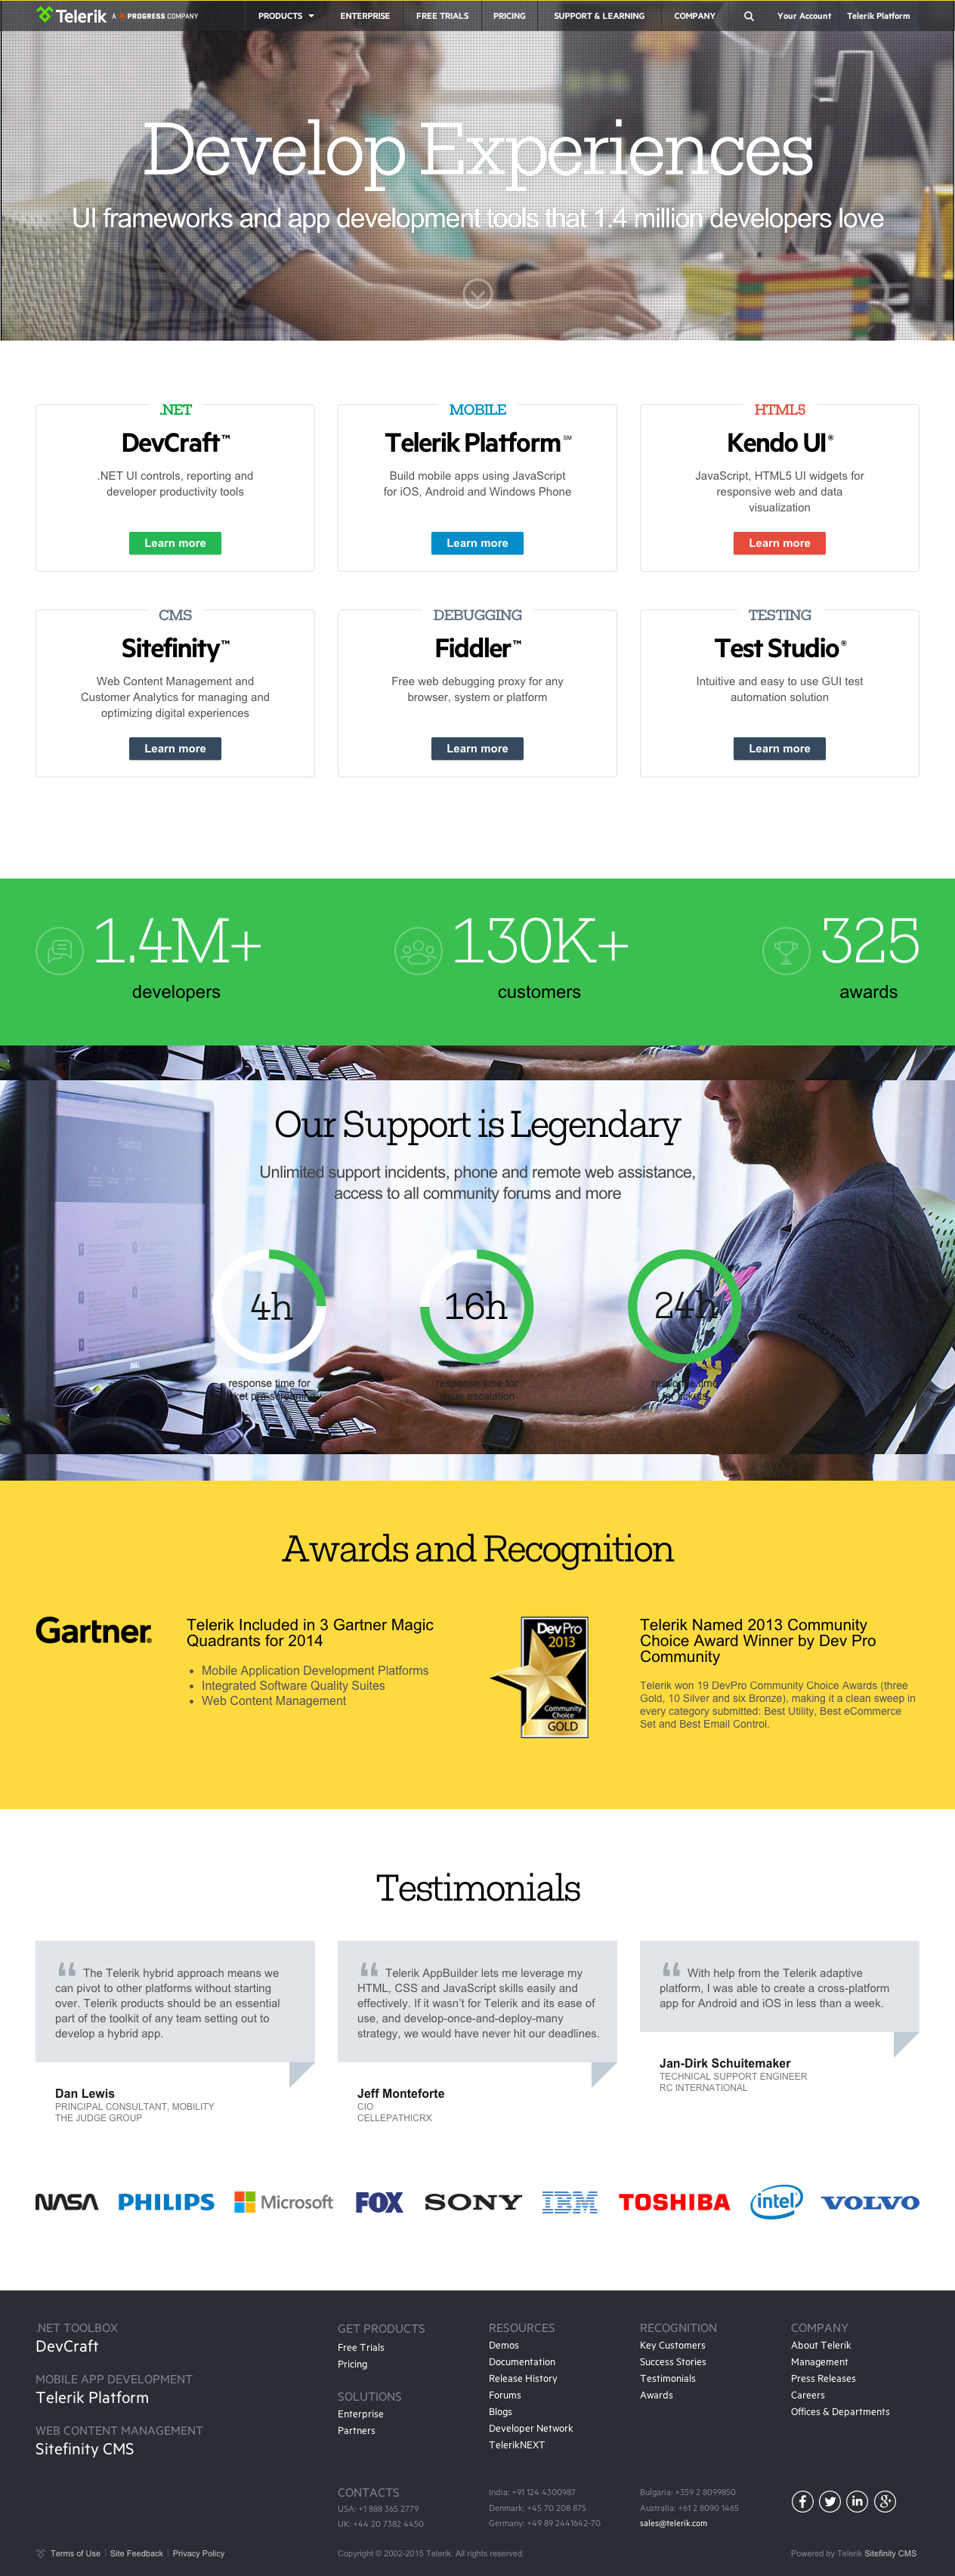 15 Examples Of Brilliant Website Homepage Design